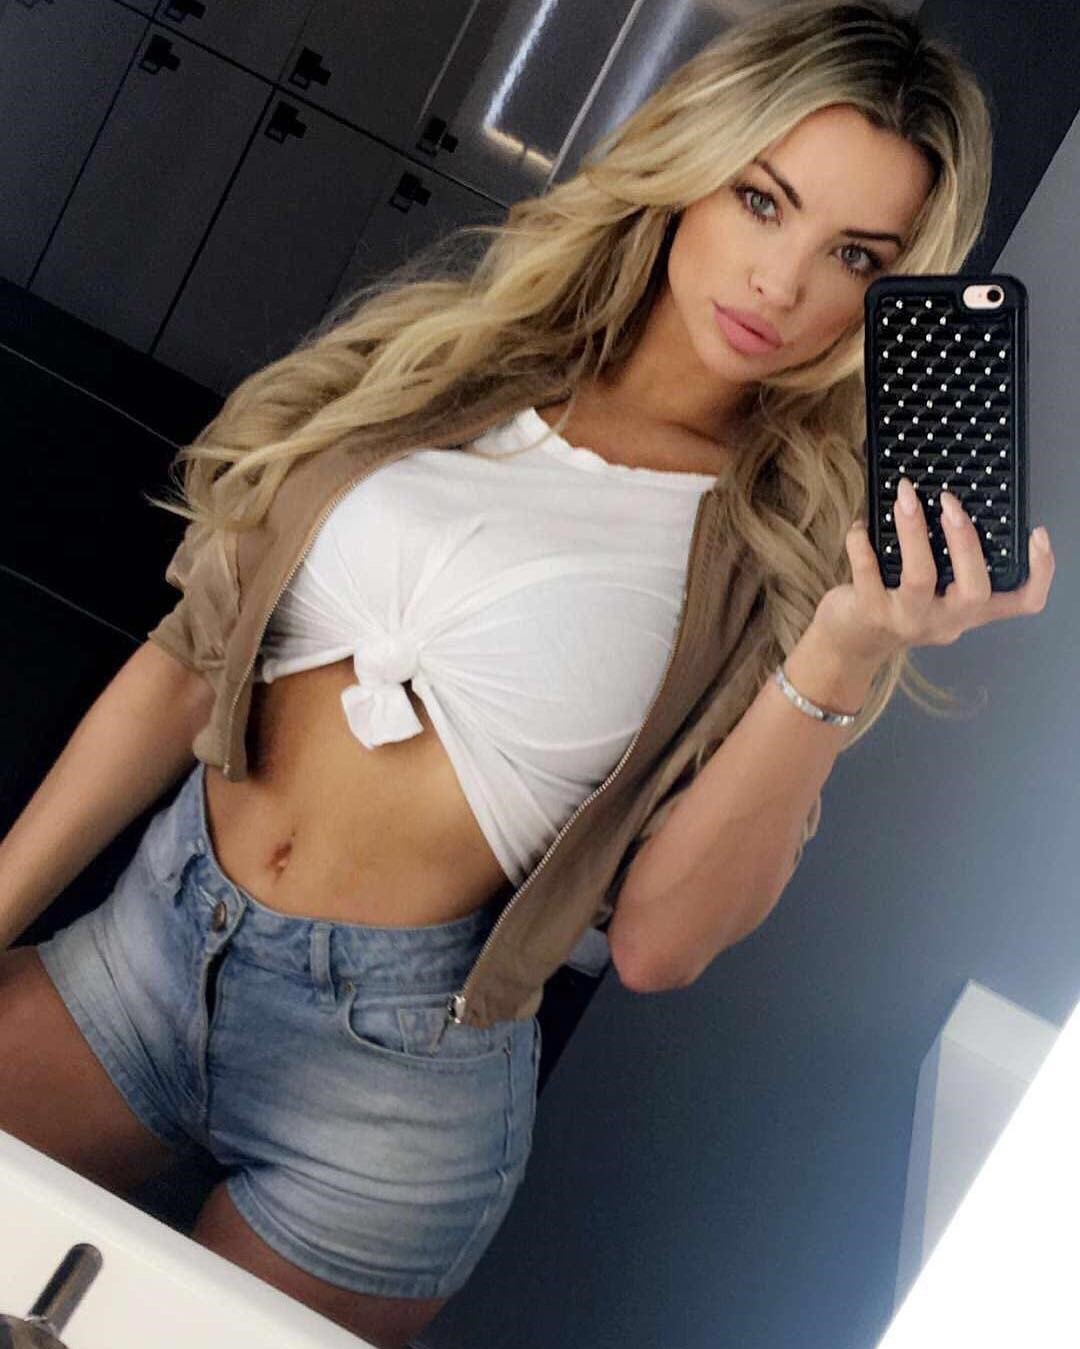 sexy instagram woman lindsey pelas taking a sexy selfie and showing her stomach in a white crop top